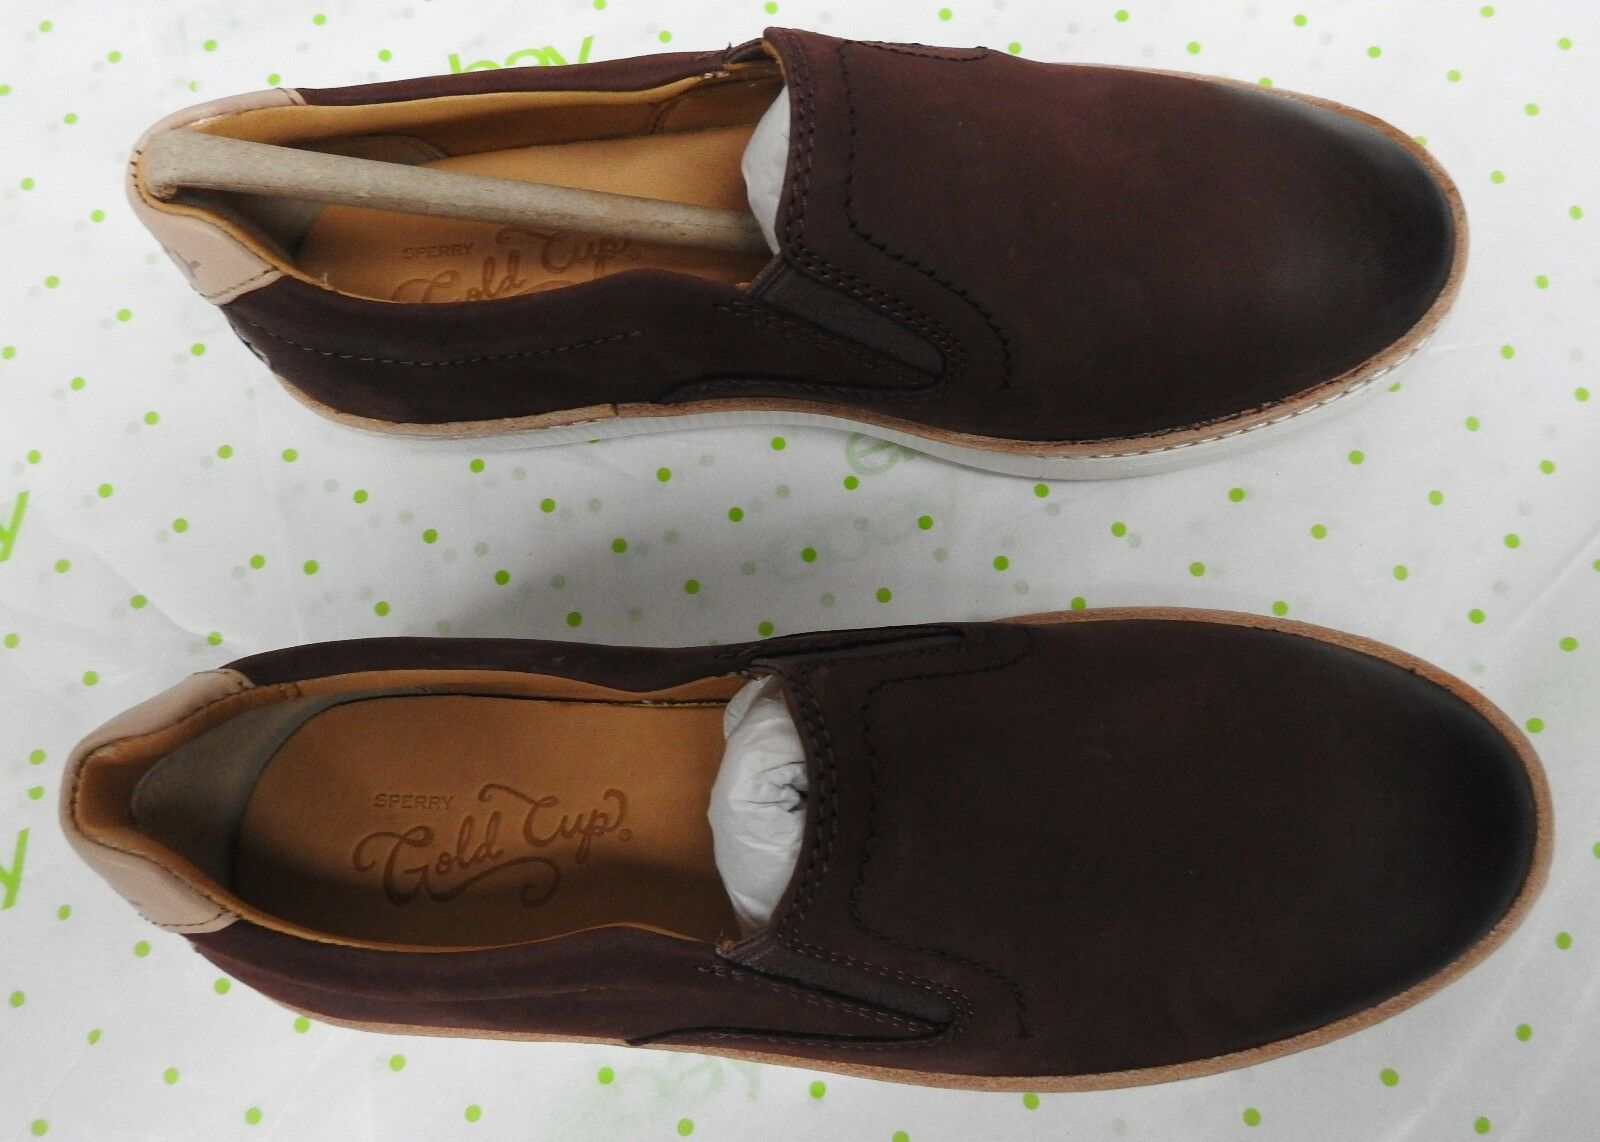 Sperry Top Sider women's size 5 M Dark Brown Rey gold cup shoes leather loafers